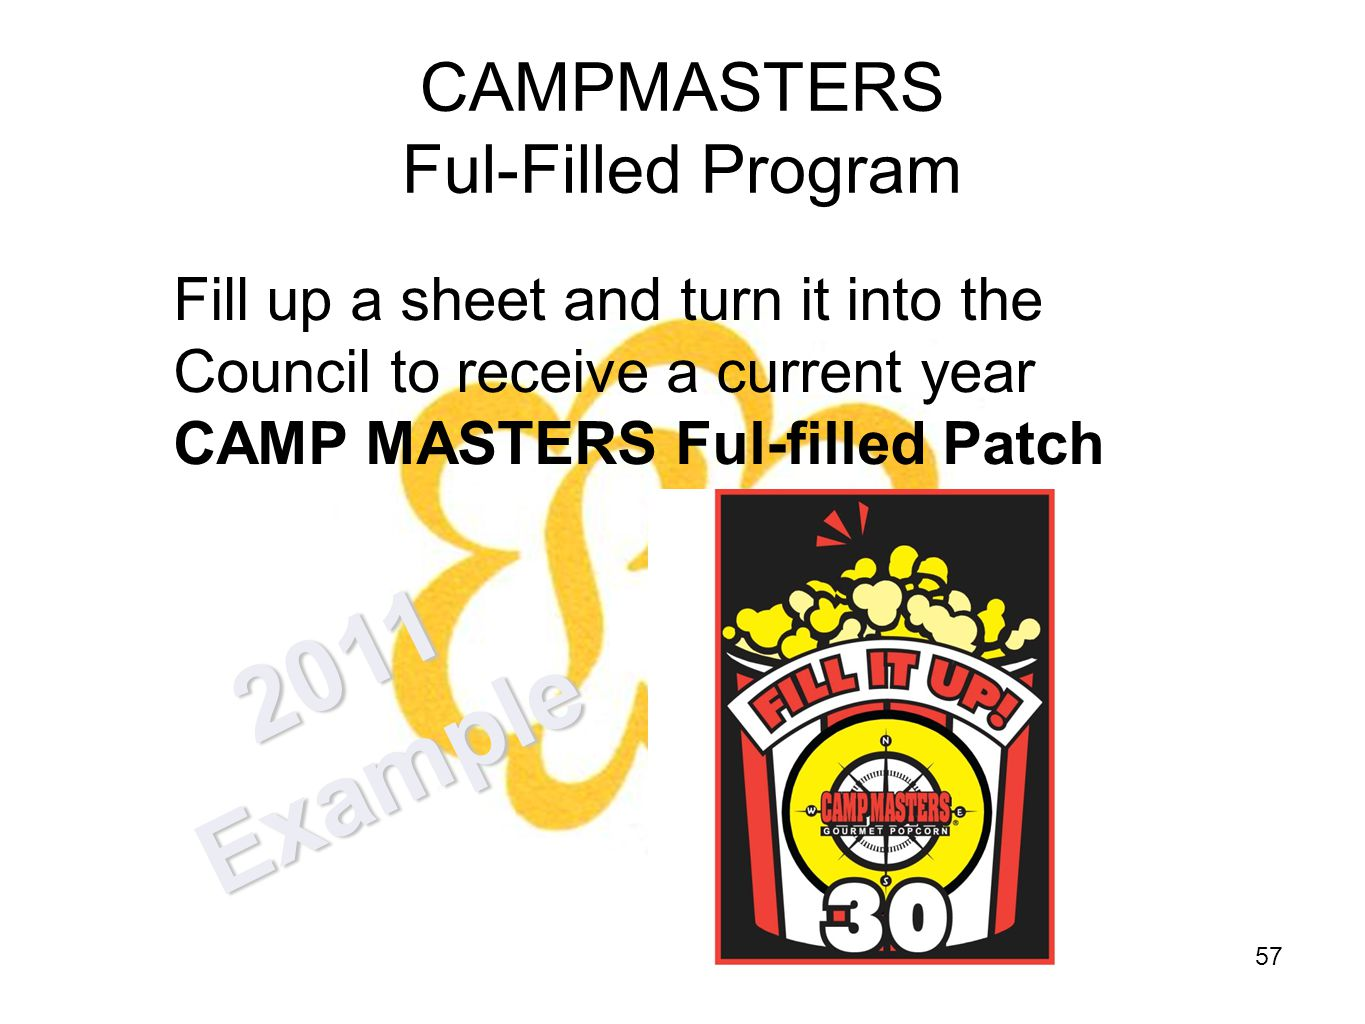 CAMPMASTERS Ful-Filled Program 57 Fill up a sheet and turn it into the Council to receive a current year CAMP MASTERS Ful-filled Patch 2011 Example